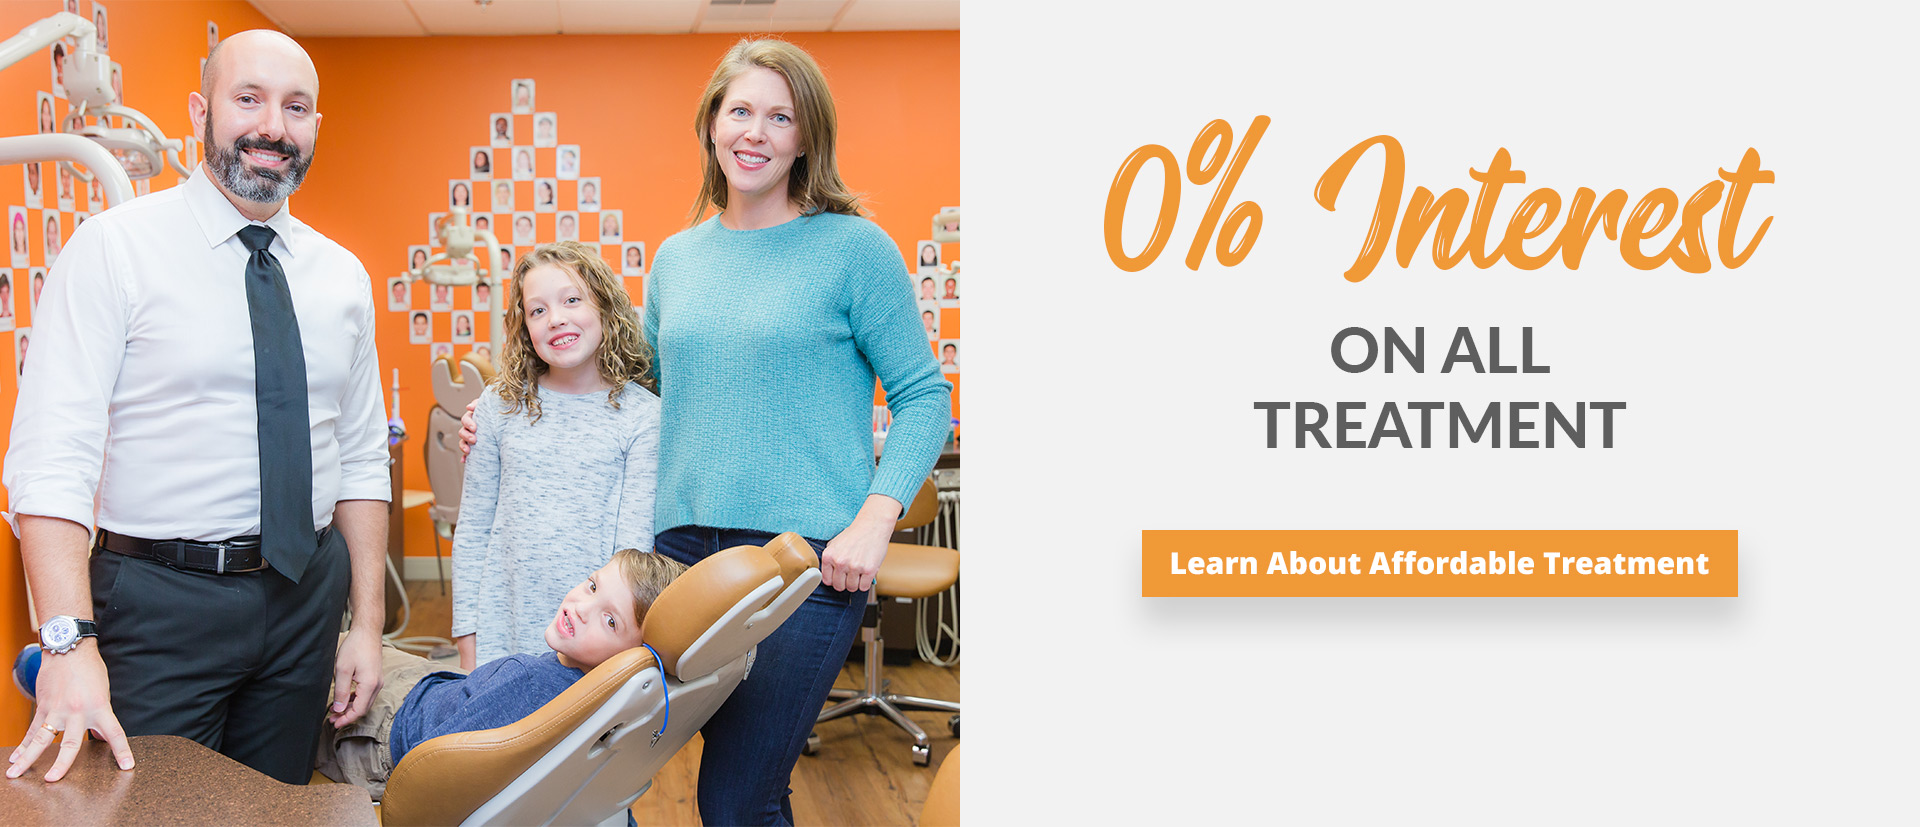 learn more affordable treatments